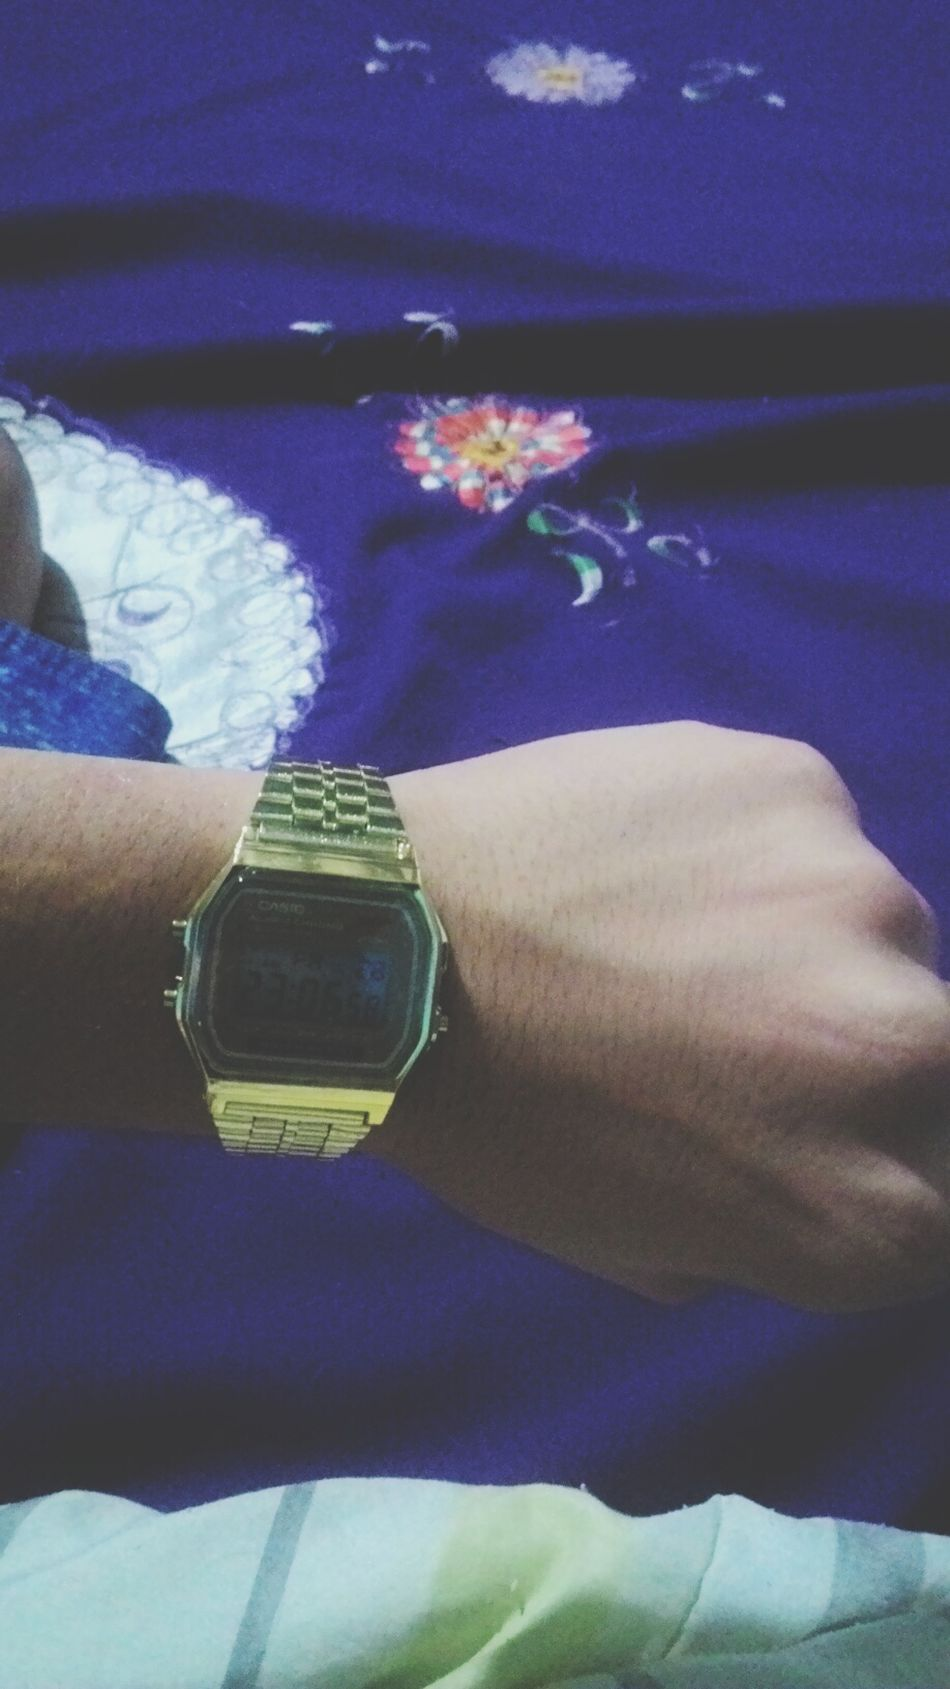 One Person Watch Gold Casio Watch Casiogold